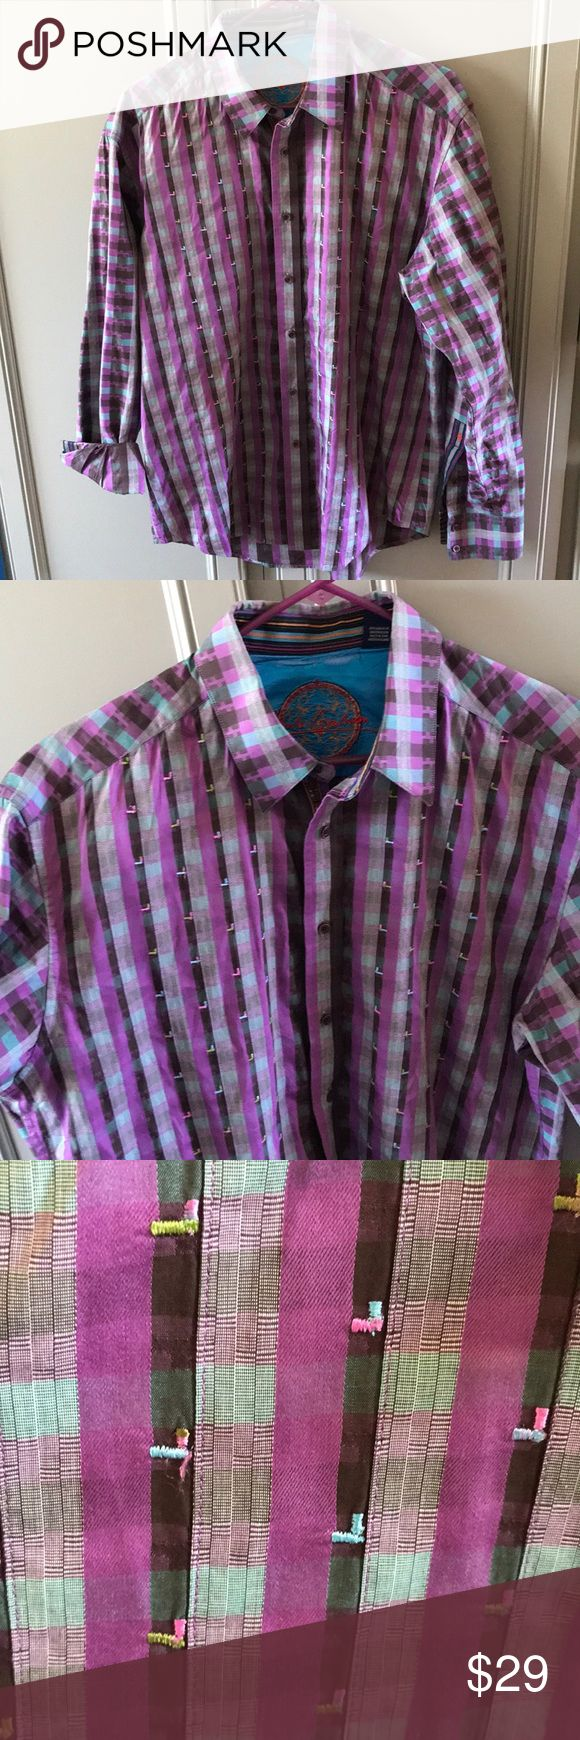 """Robert Graham button down Shirt Robert Graham button down Shirt """"Knowledge Wisdom Faith"""" Beautiful Ladies Plaid Shirt w/ Embroidered detail Long sleeve,  wear them down or roll them up.  Black, Purple, and Aqua colors New without tags Robert Graham Tops Button Down Shirts"""